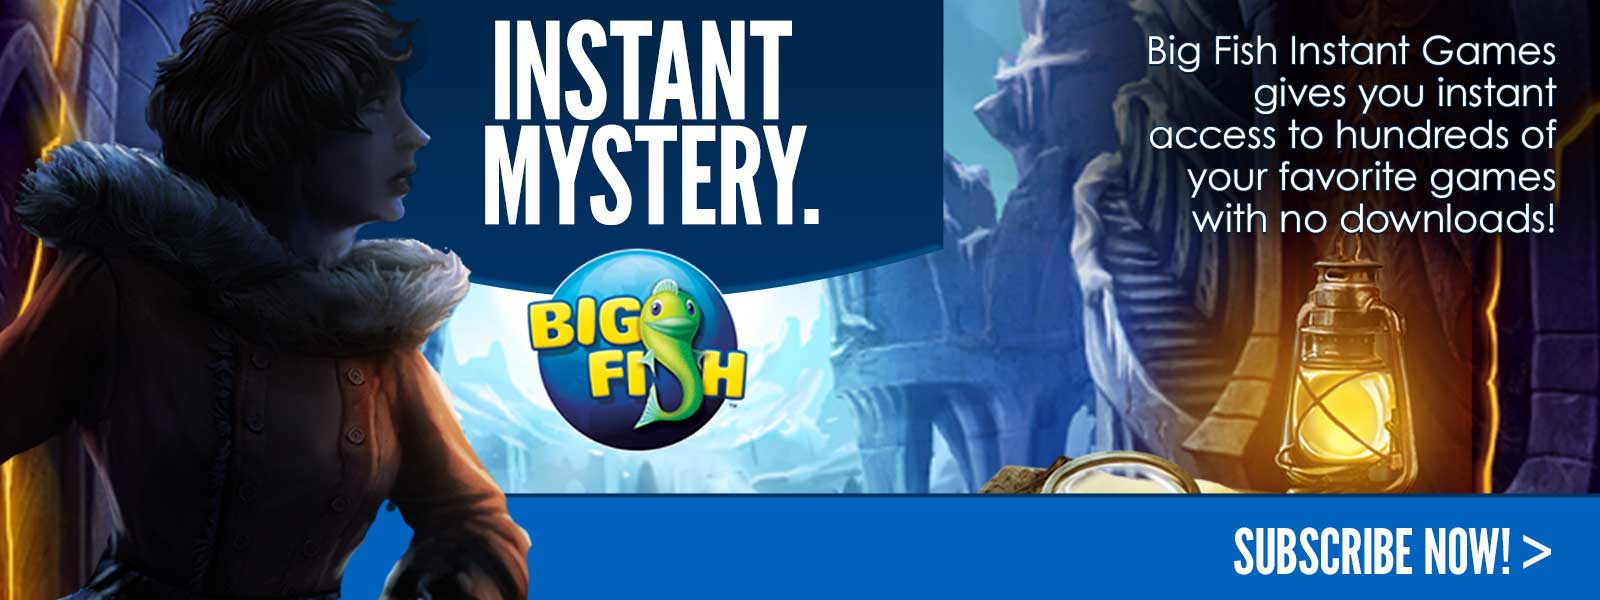 Big Fish Instant Games